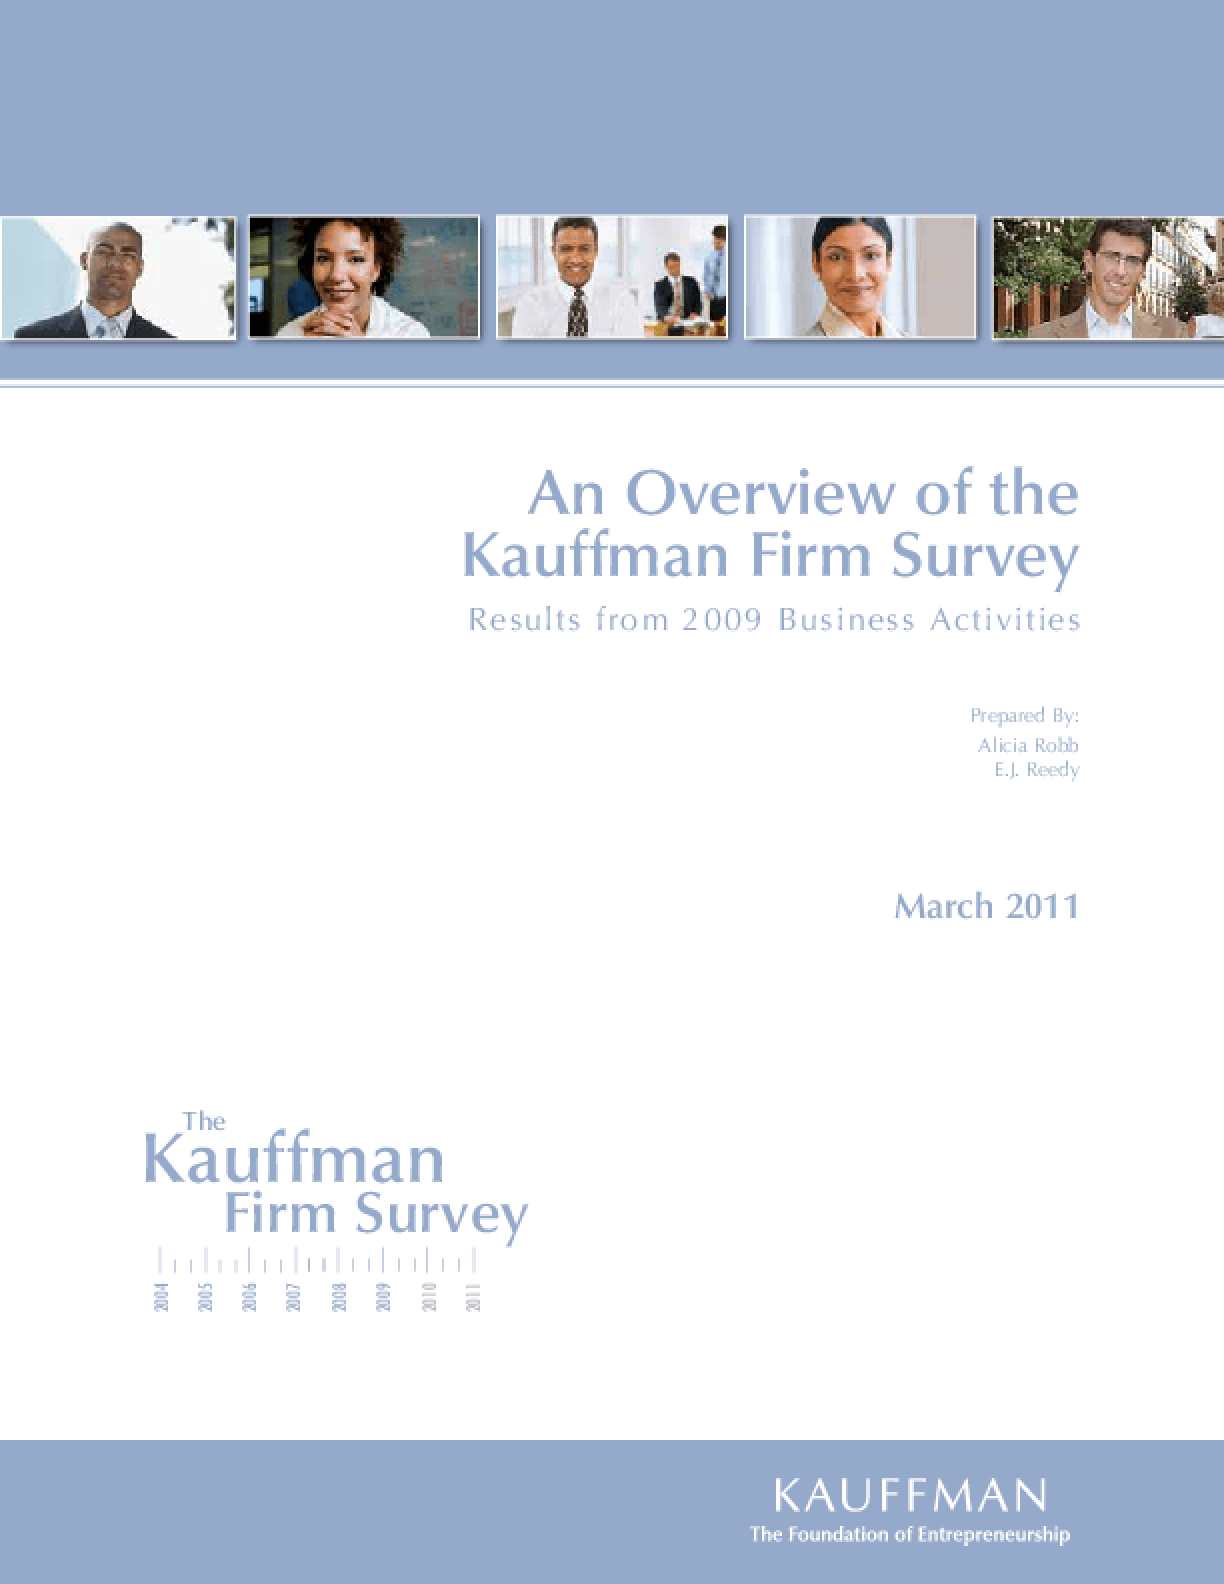 An Overview of the Kauffman Firm Survey: Results From 2009 Business Activities